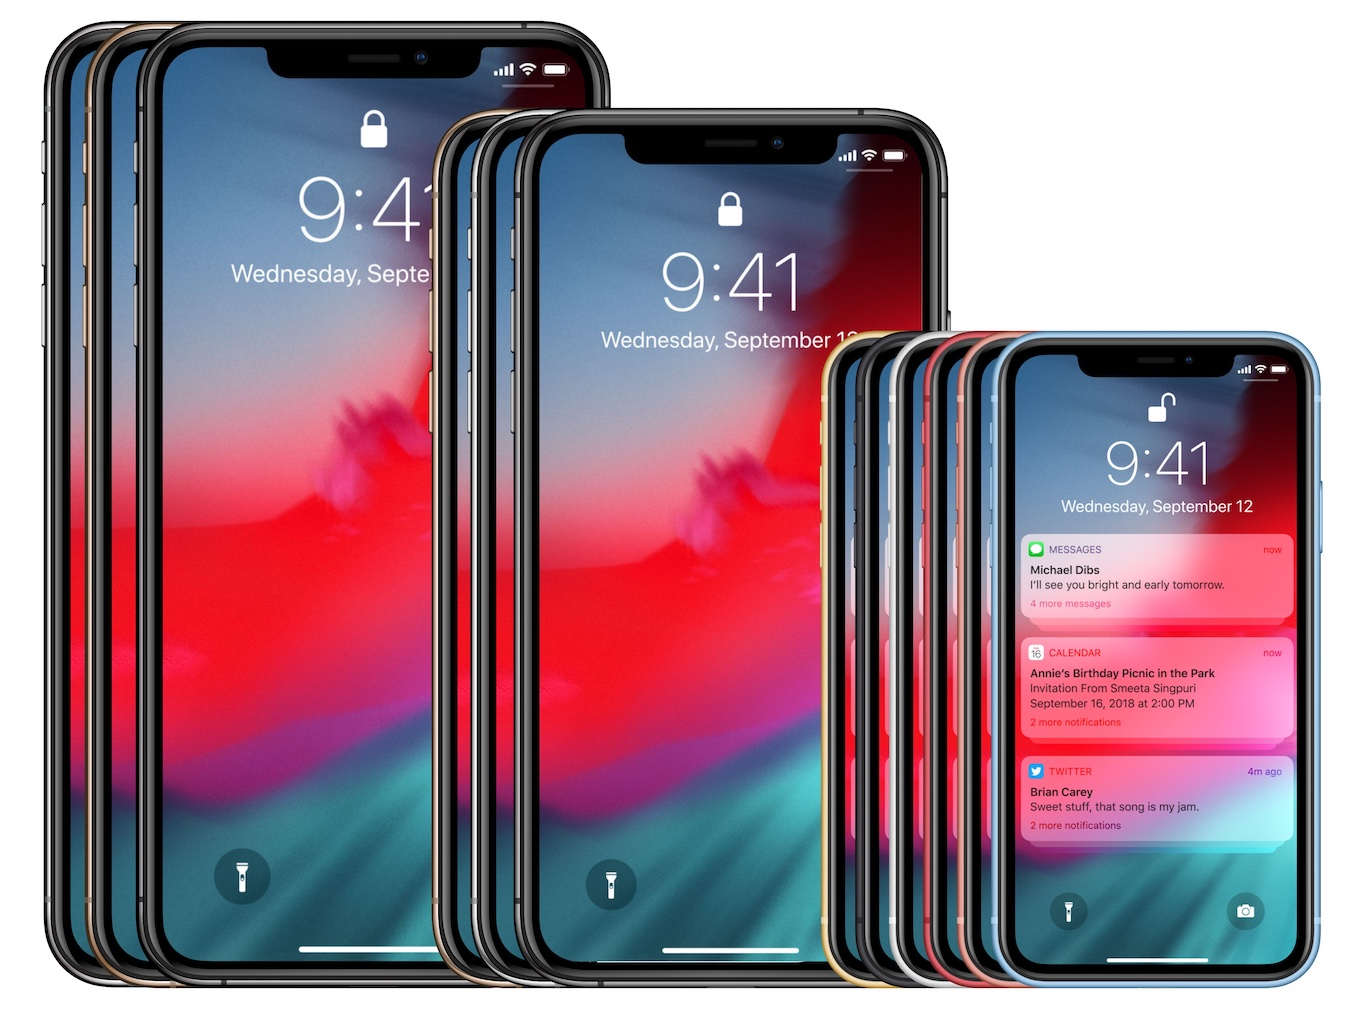 Facebook Design iPhone XR/XS